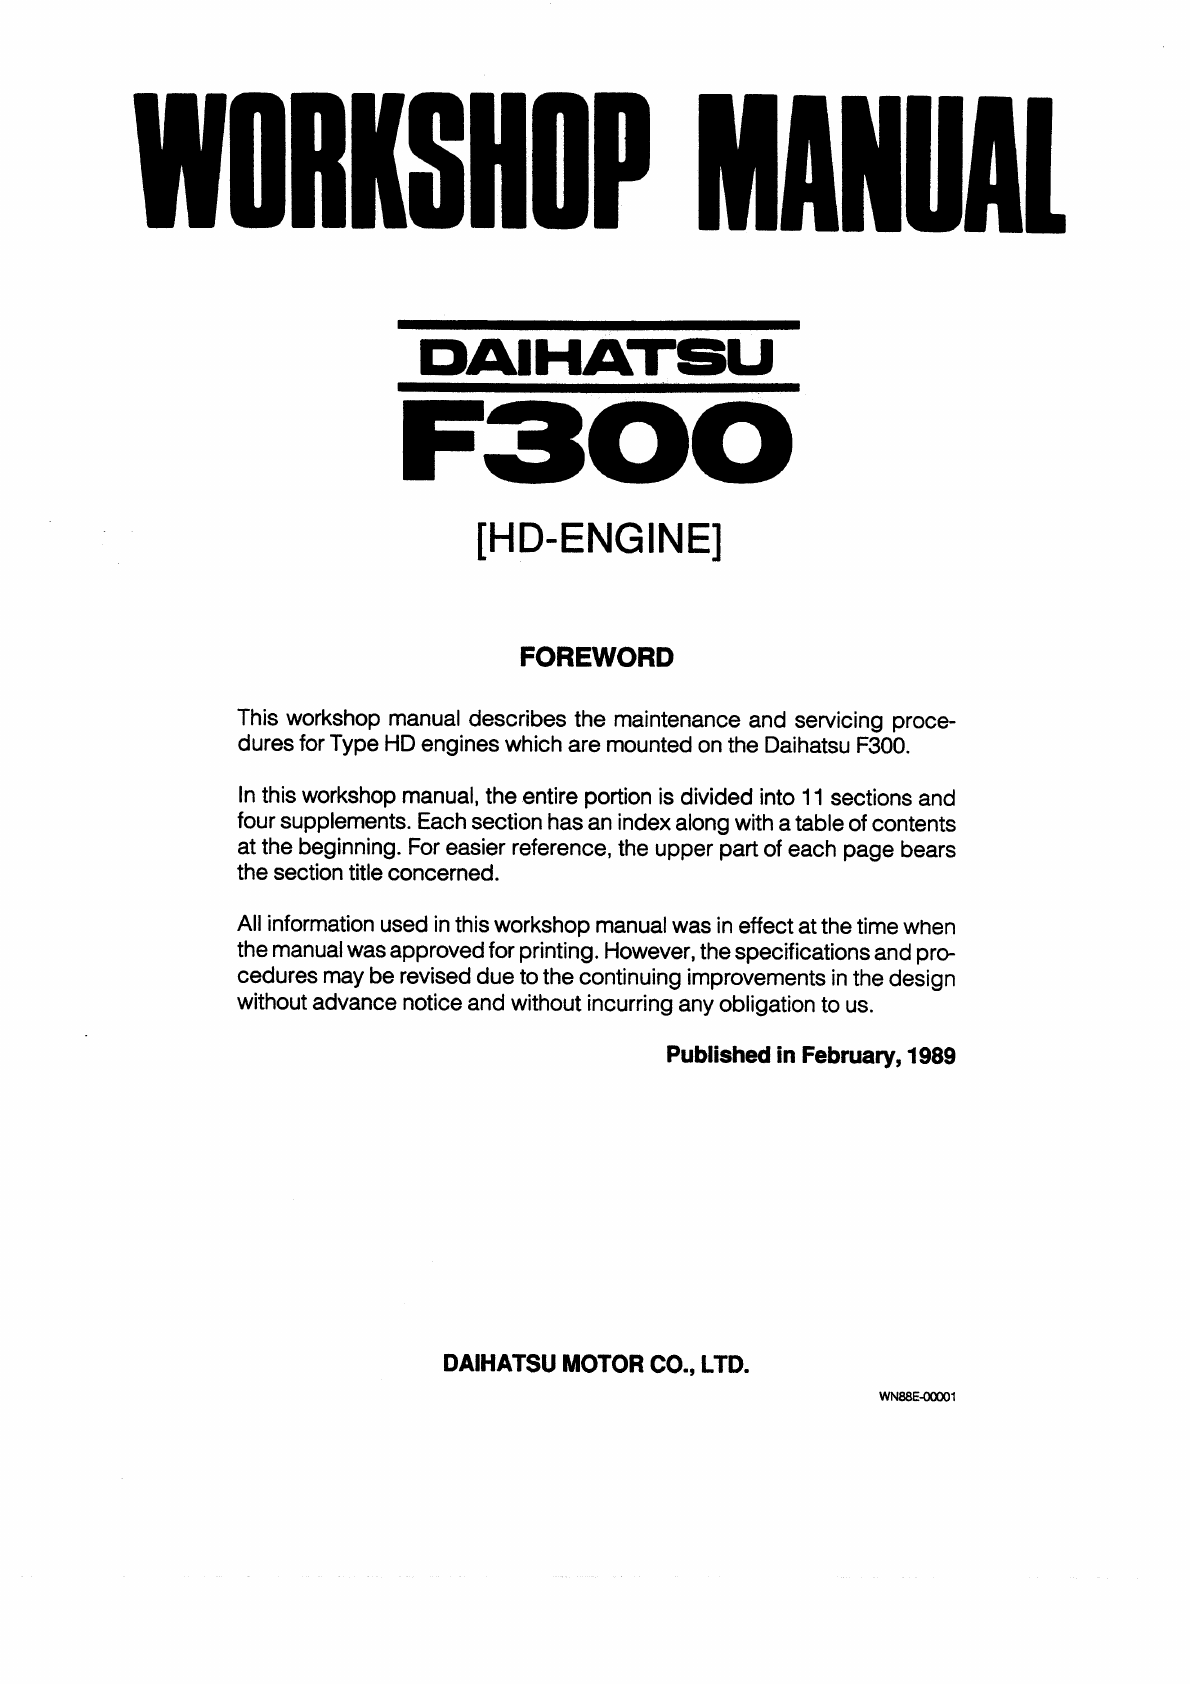 wiring diagram daihatsu taruna wiring library Simple Wiring Diagrams daihatsu 327 engine manual product user guide instruction u2022 rh mekatta co residential electrical wiring diagrams